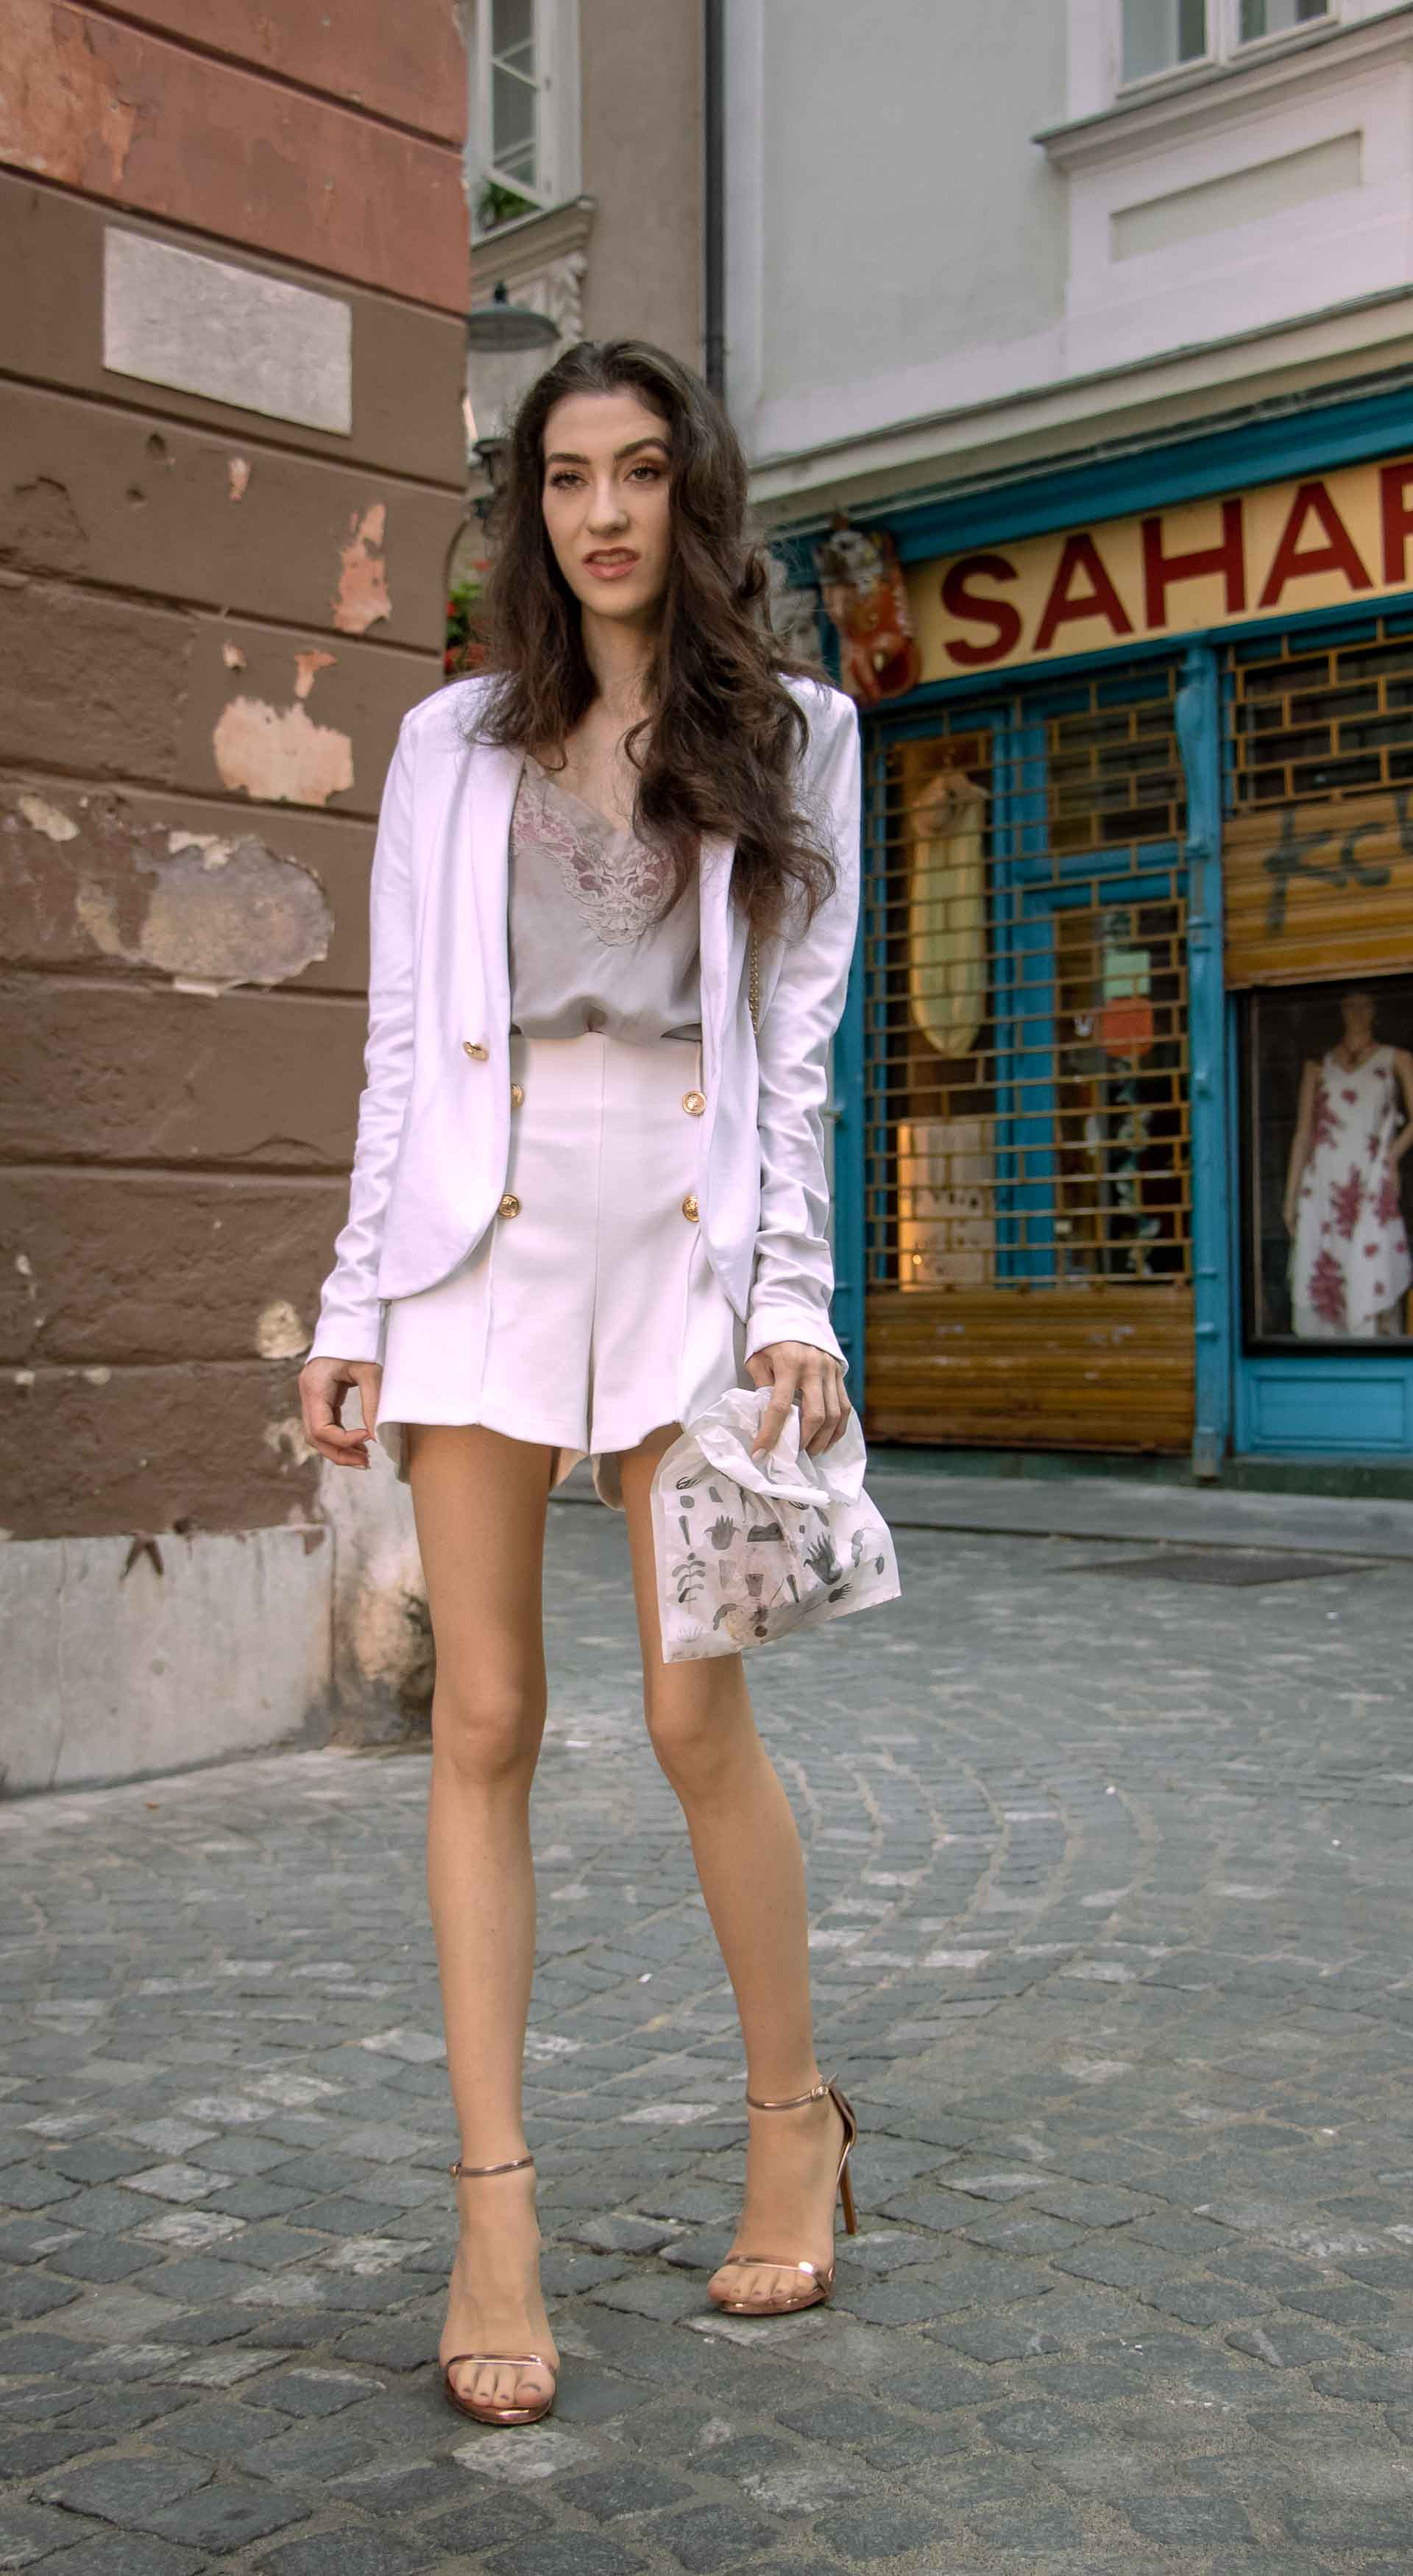 Beautiful Slovenian Fashion Blogger Veronika Lipar of Brunette from Wall dressed in all in white suit, white blazer, white tailored shorts, Stuart Weitzman high shine metallic nudist song sandals, shoulder bag with a paper bag on the street in the morning after night out